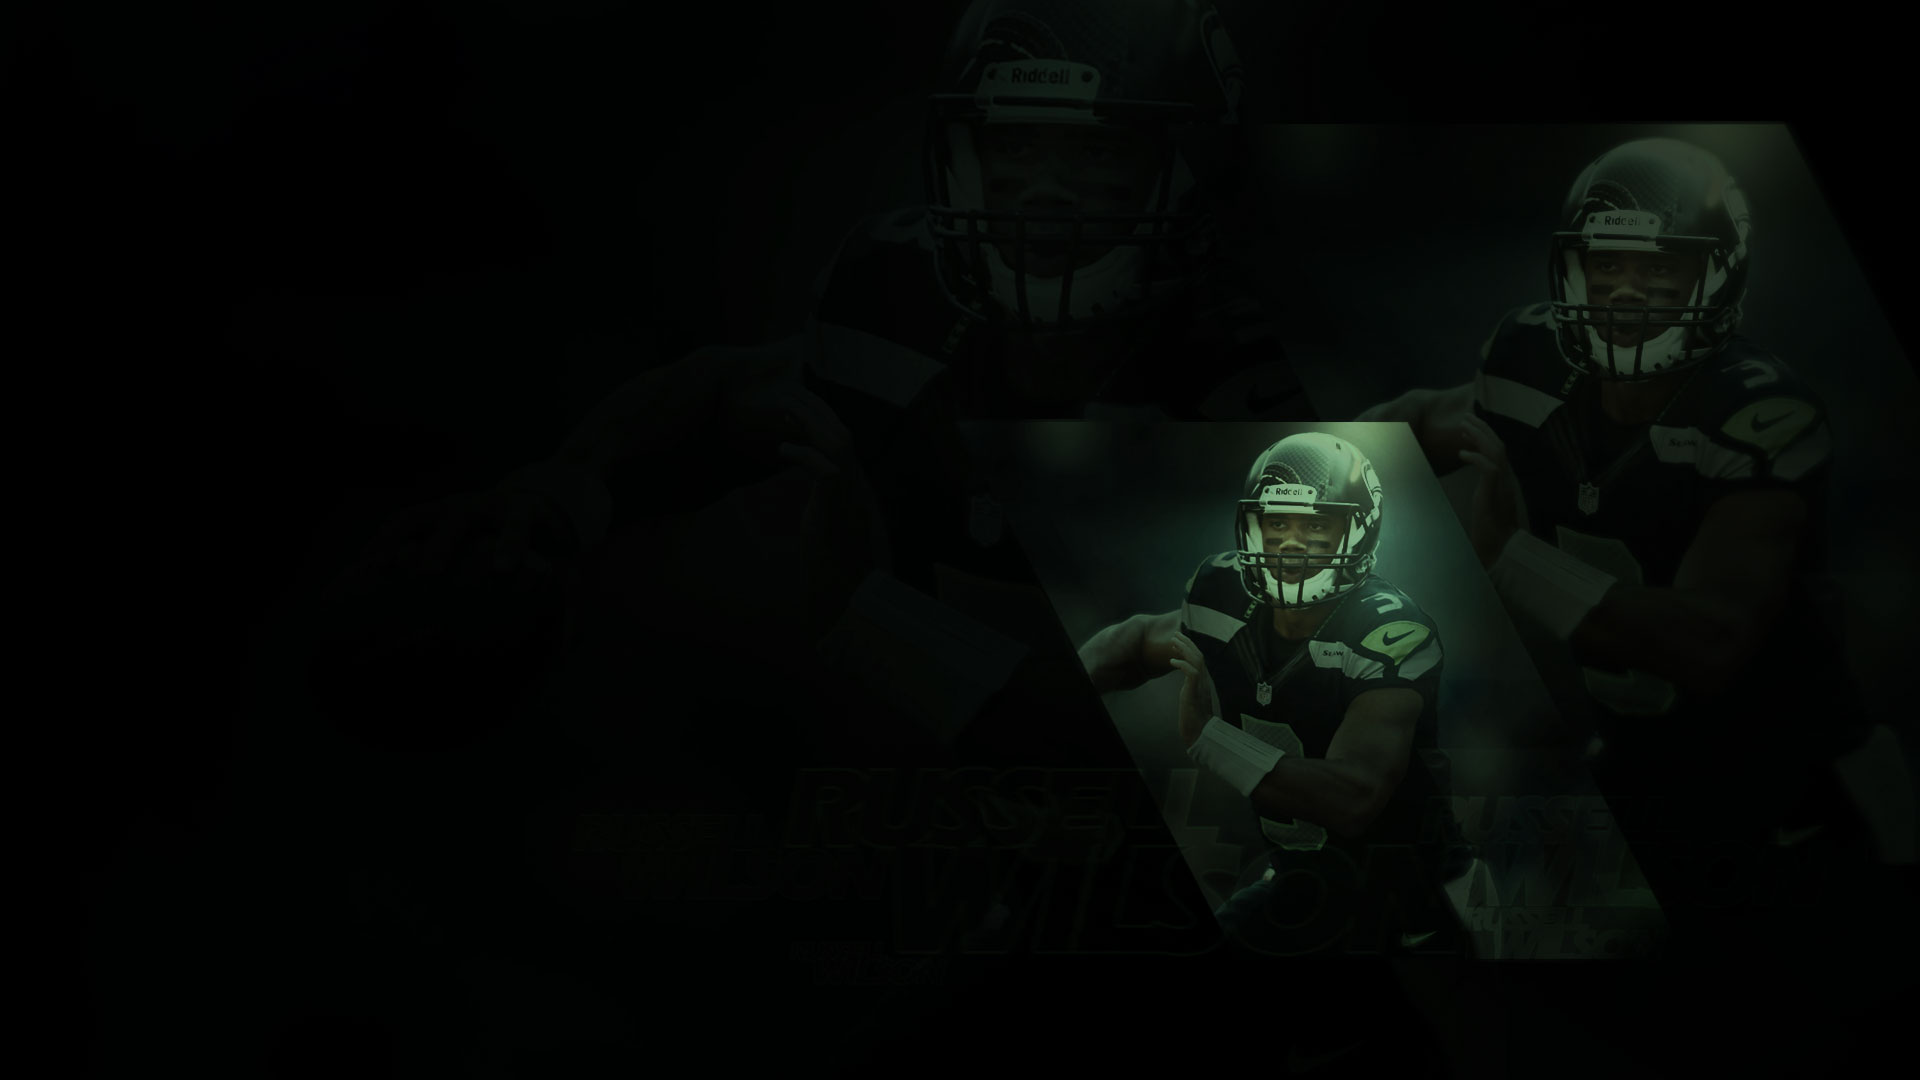 russell wilson wallpaper wallpapers - photo #21